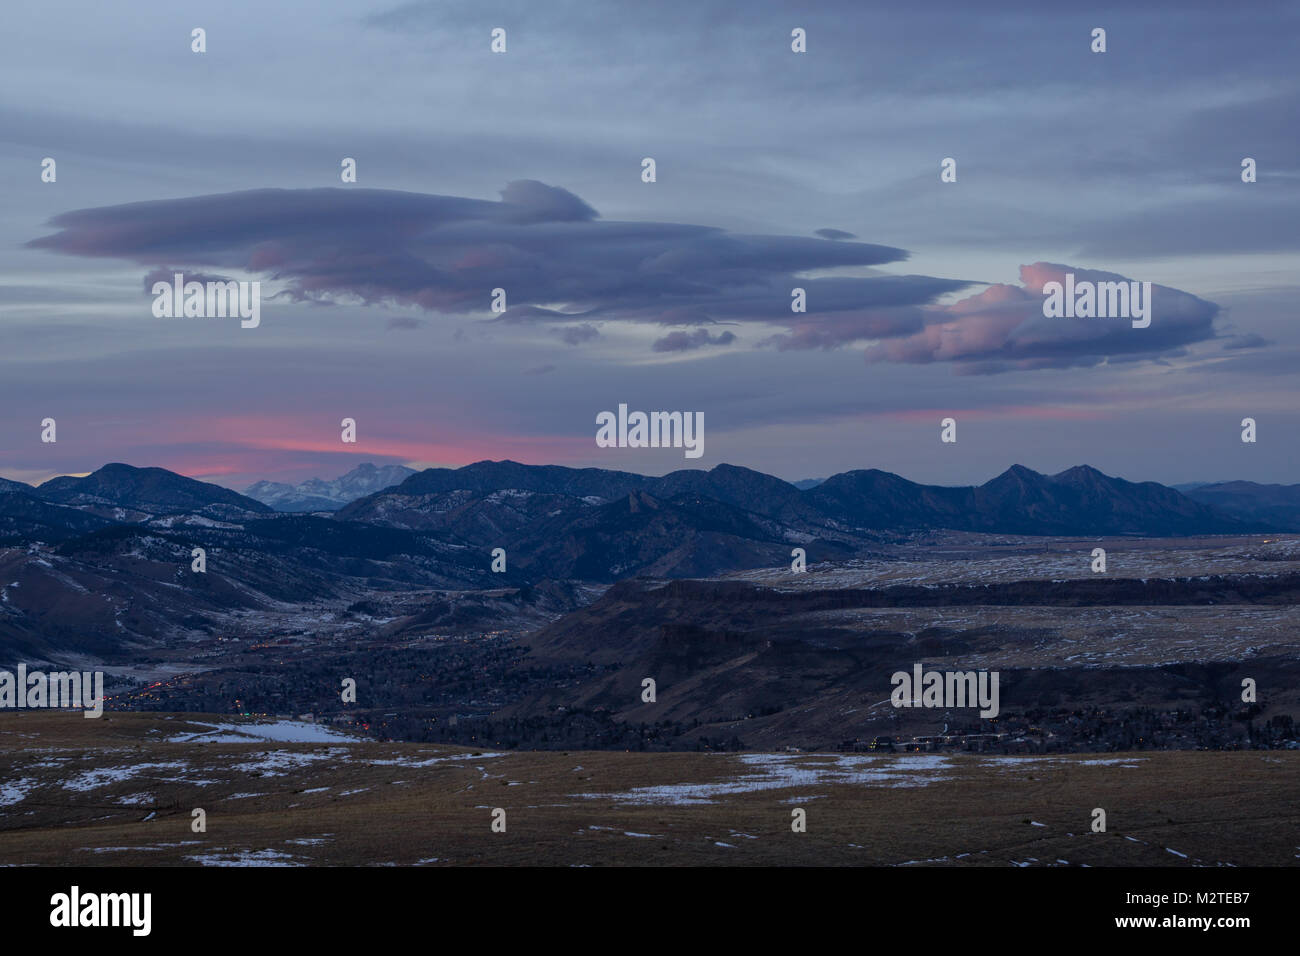 From atop Green Mountain, in Lakewood, Colorado. - Stock Image